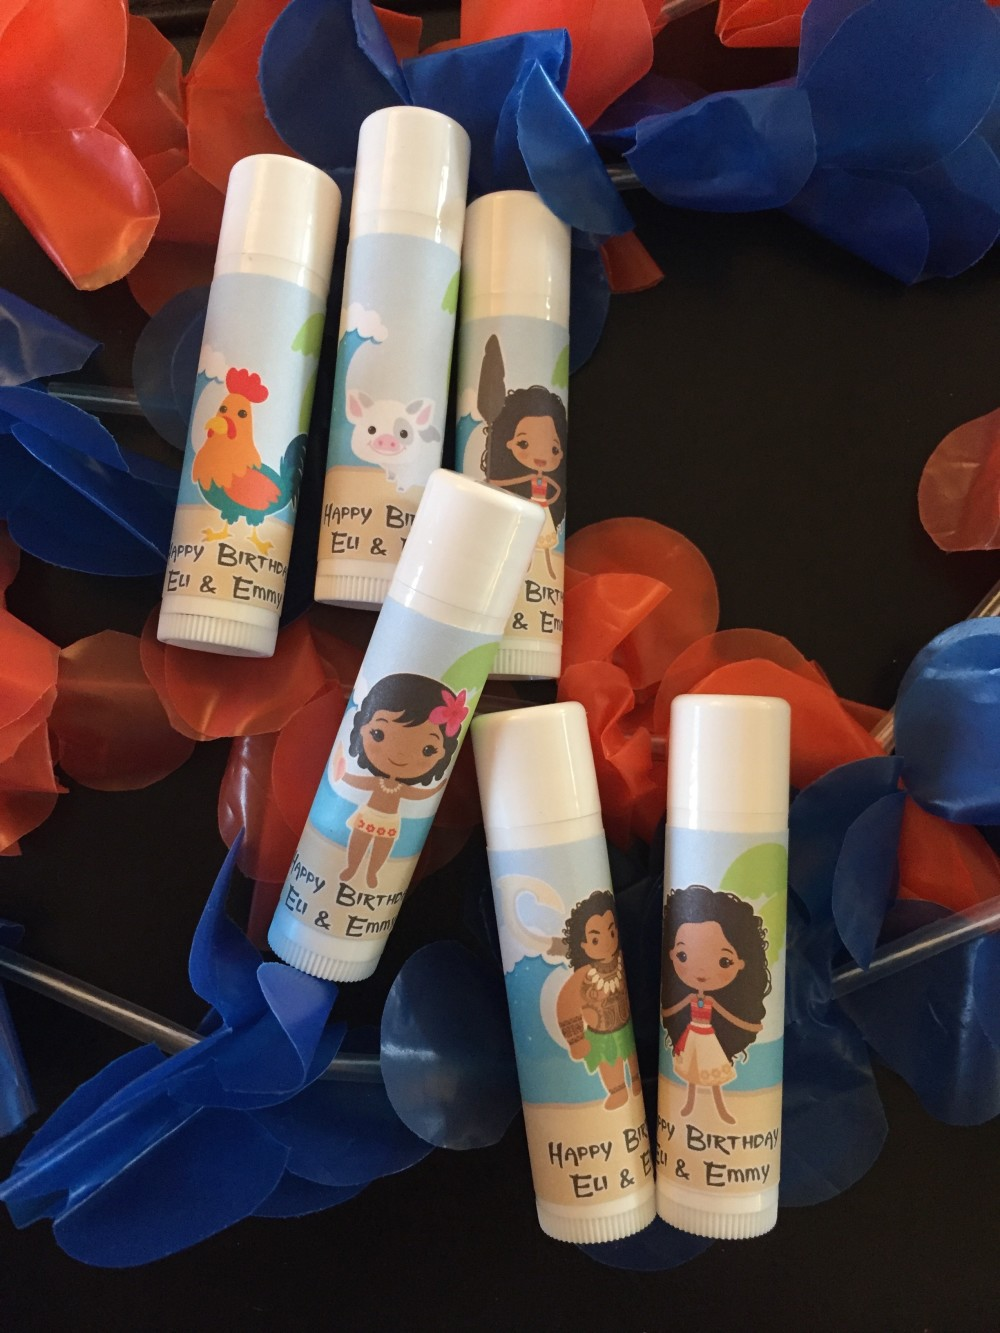 moana party favors // lip balms from Bolivia's party favors // a monkey and his mama